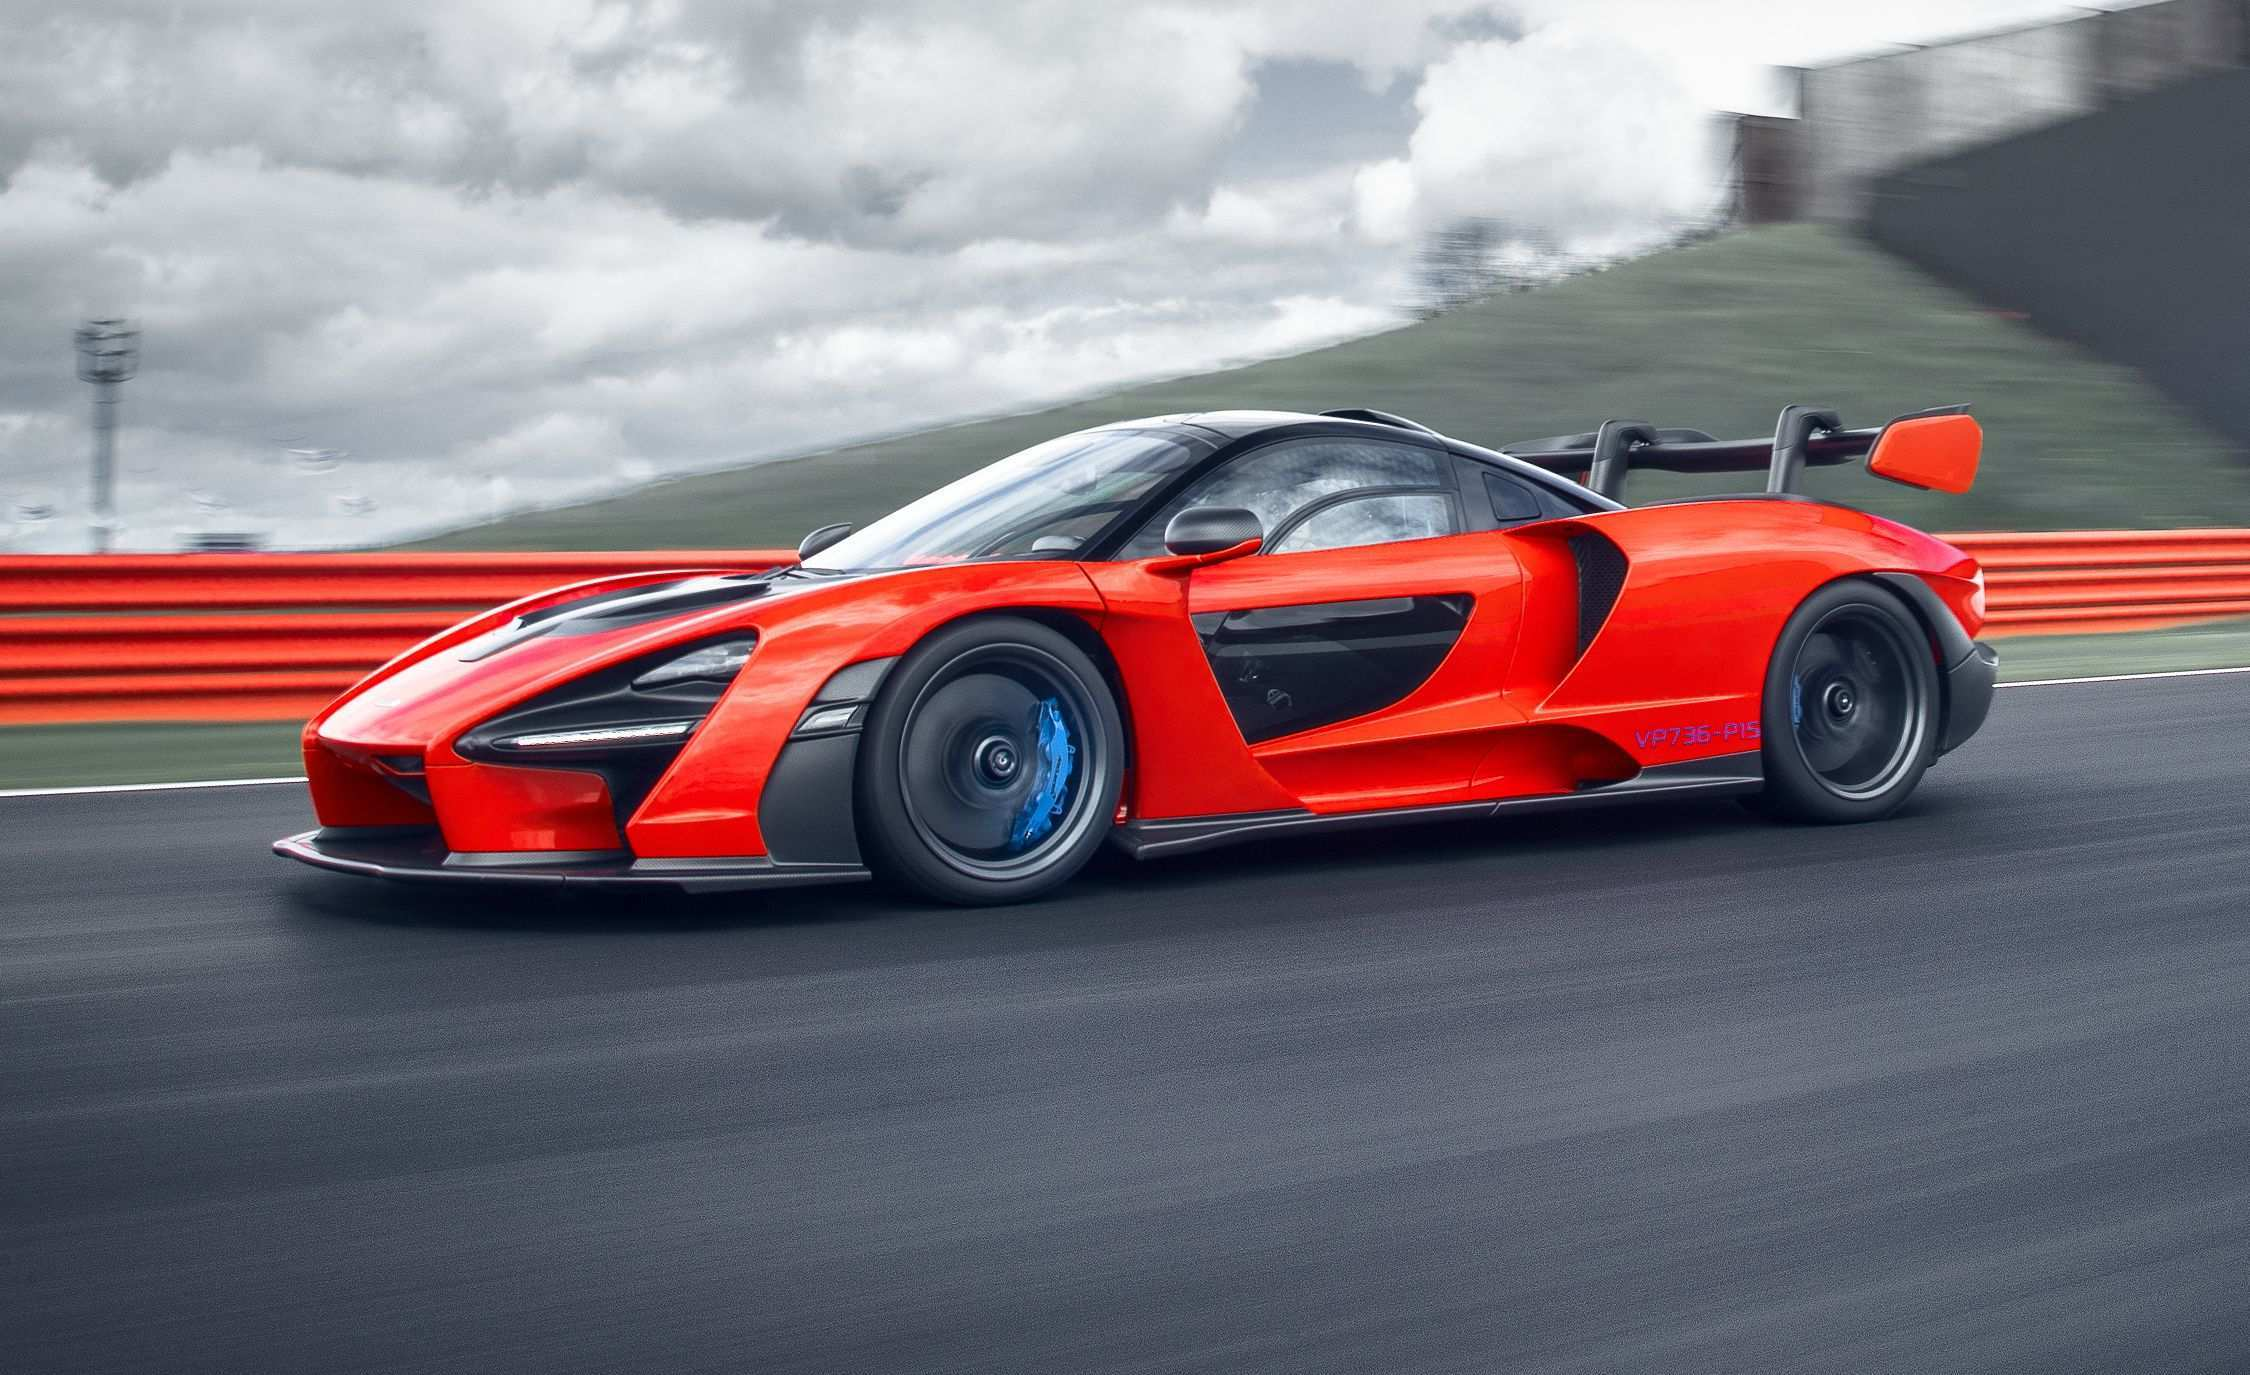 30 Best Review 2019 Mclaren Top Speed Prices with 2019 Mclaren Top Speed